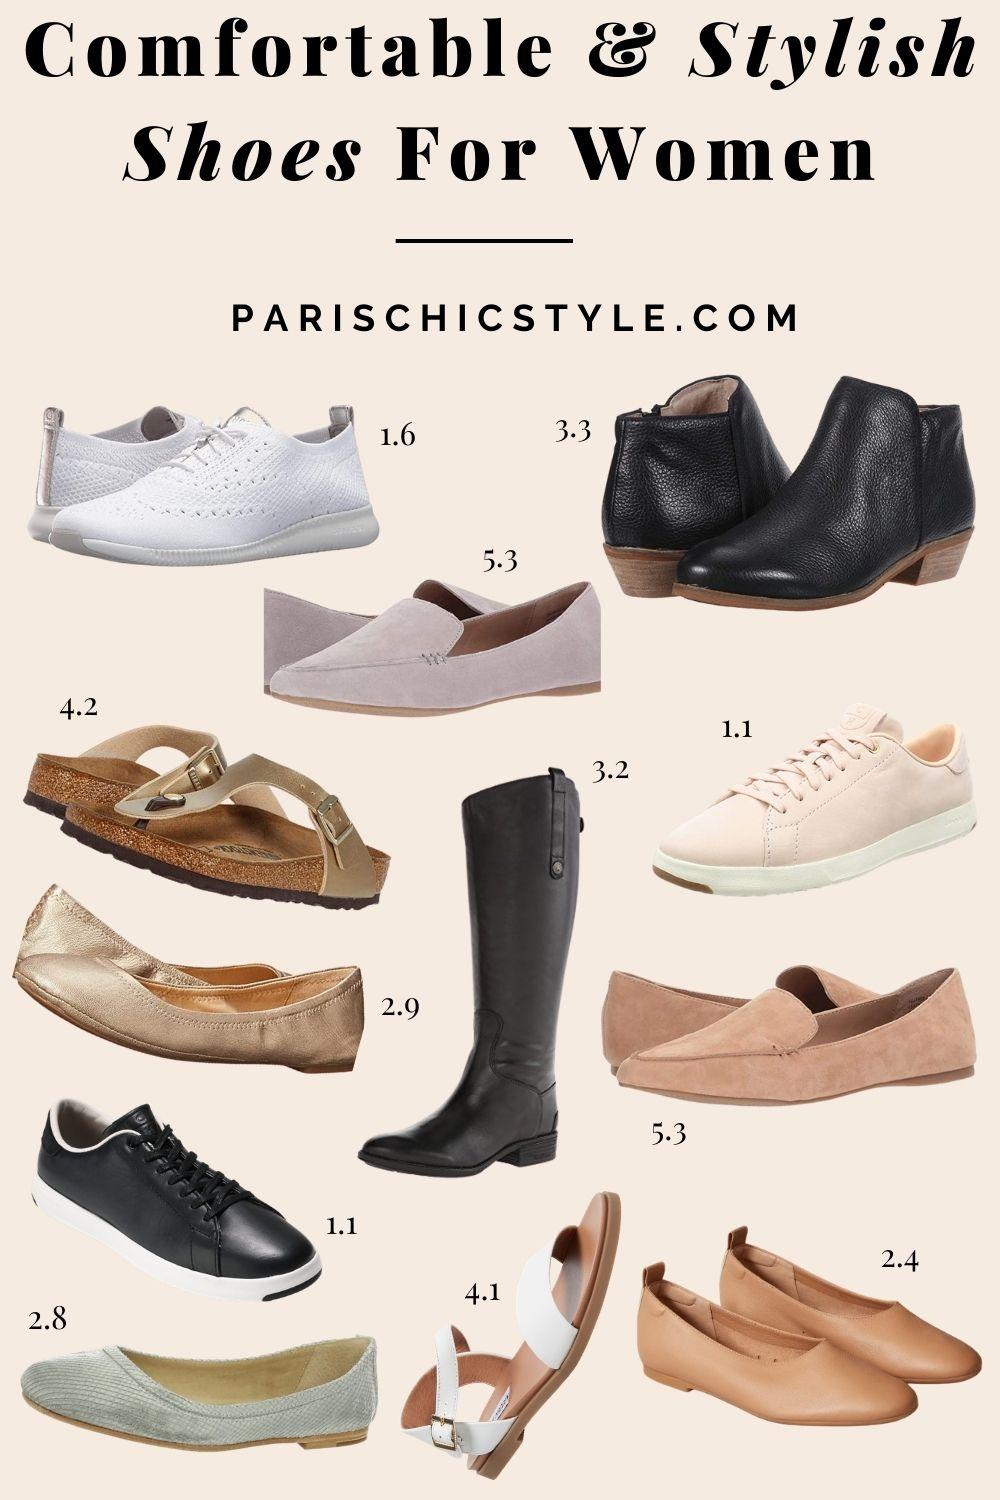 Most Comfortable Shoes For Women Walking Best Travel Shoes For Travel Work Street Style Paris Chic Style (1)